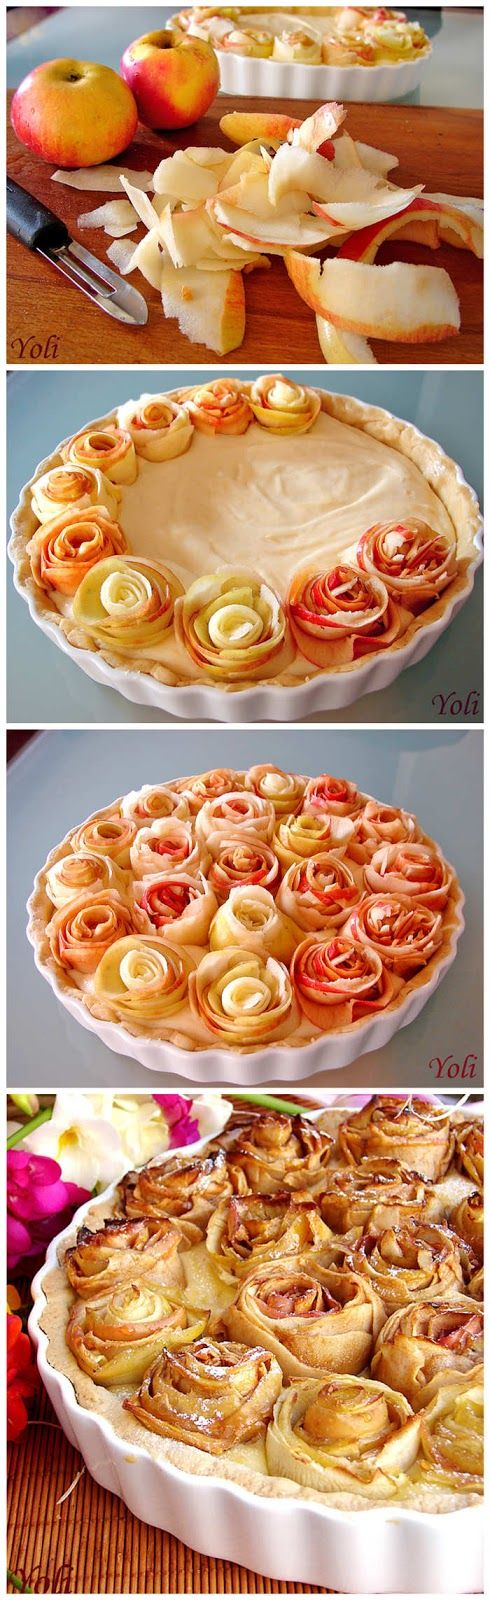 Apple pie with roses, so beautiful!!